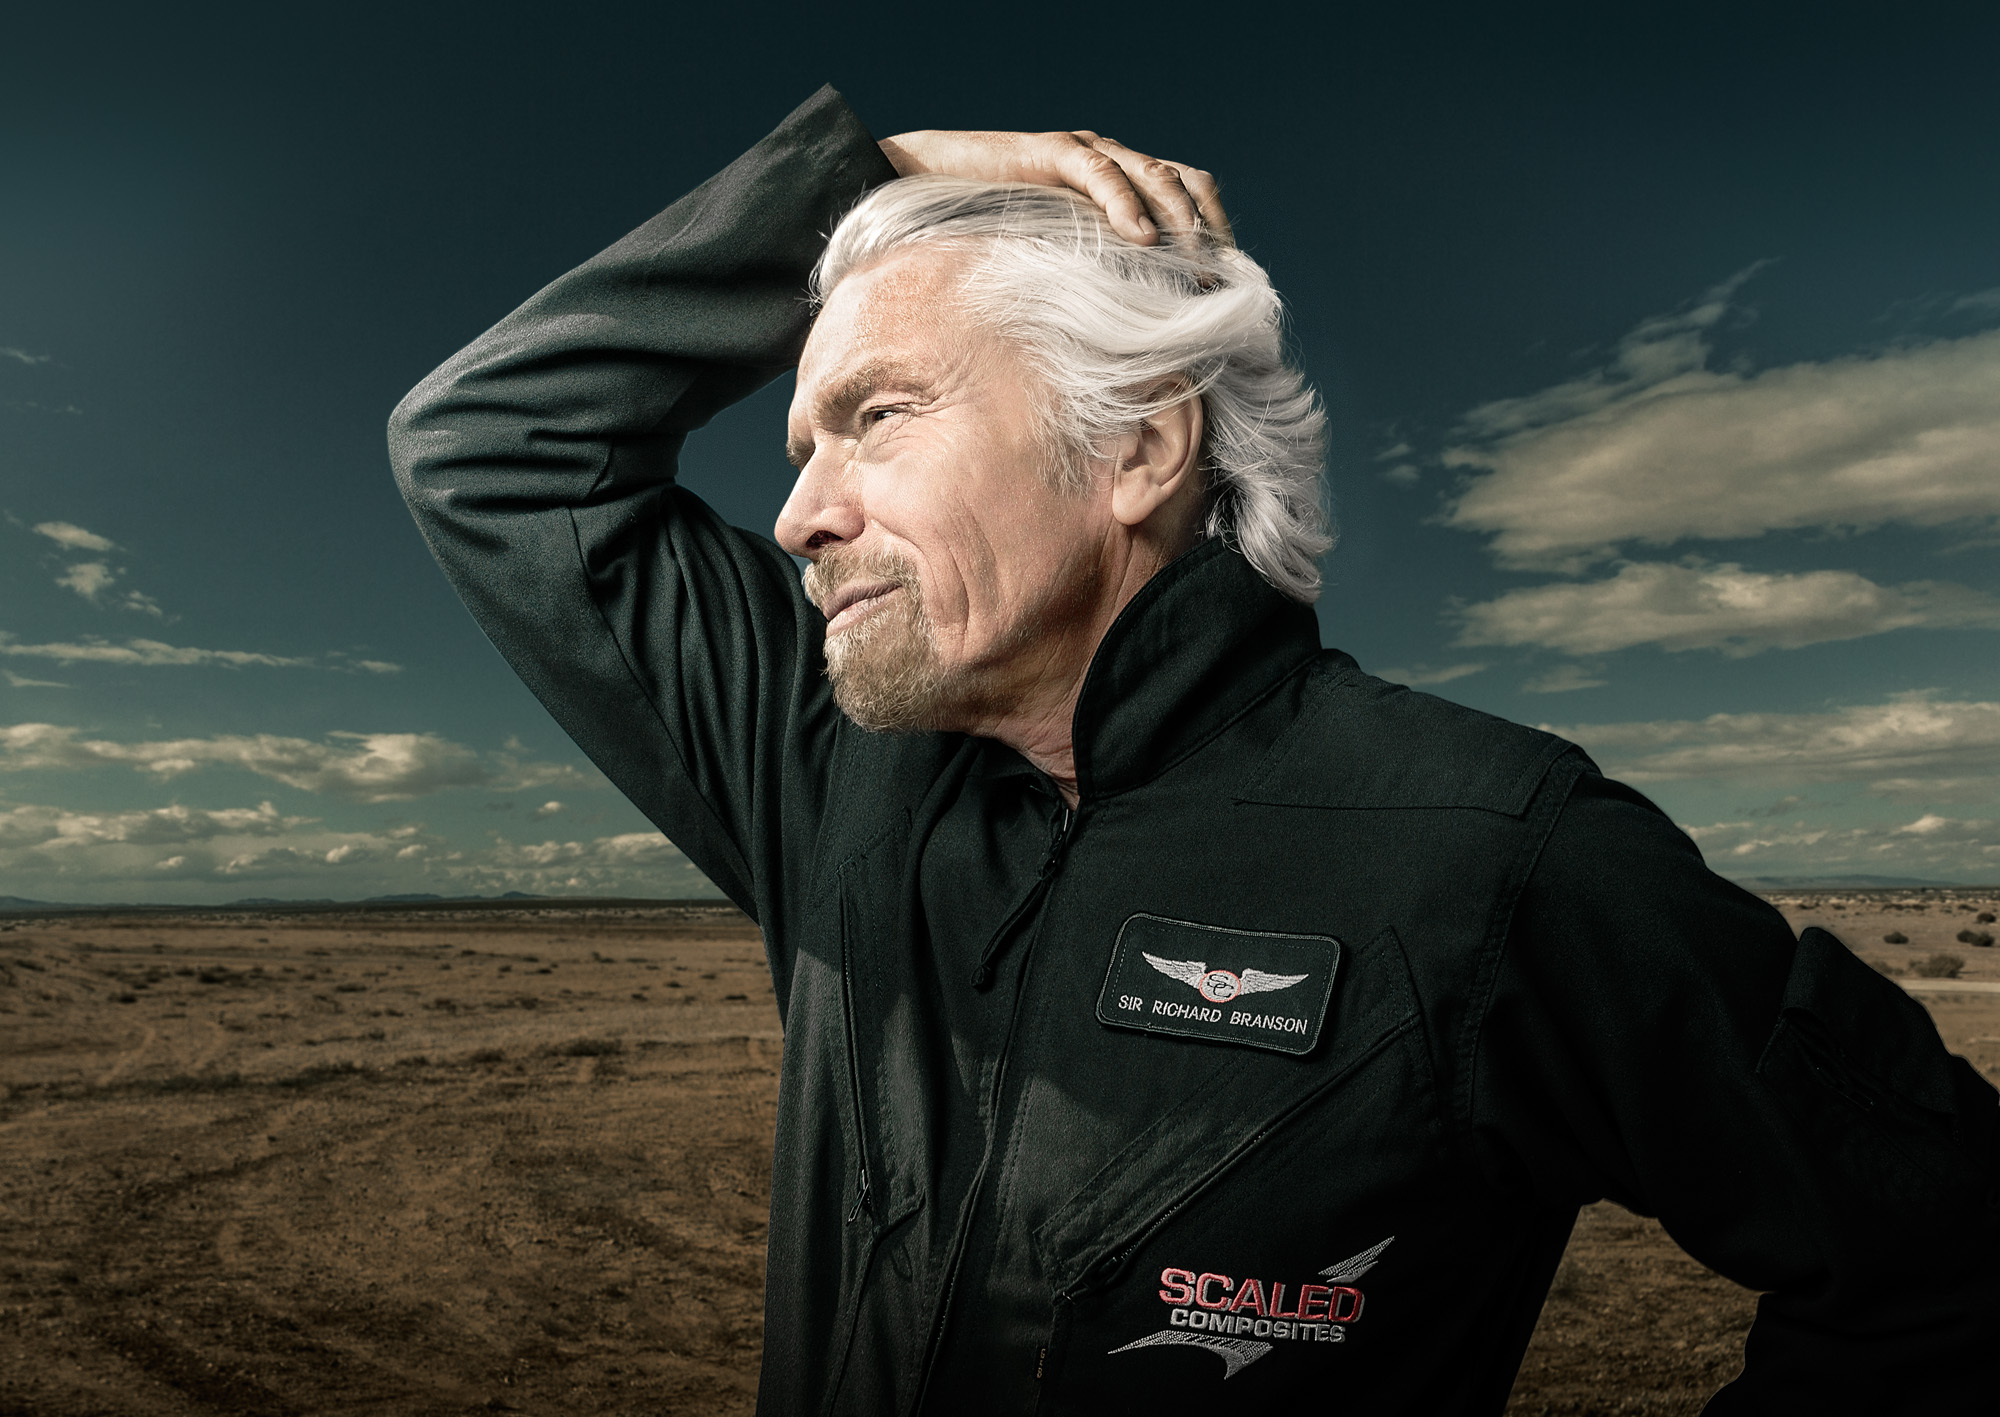 cc2012082 - Richard Branson and Virgin Galactic photographed for Wired UK Magazine